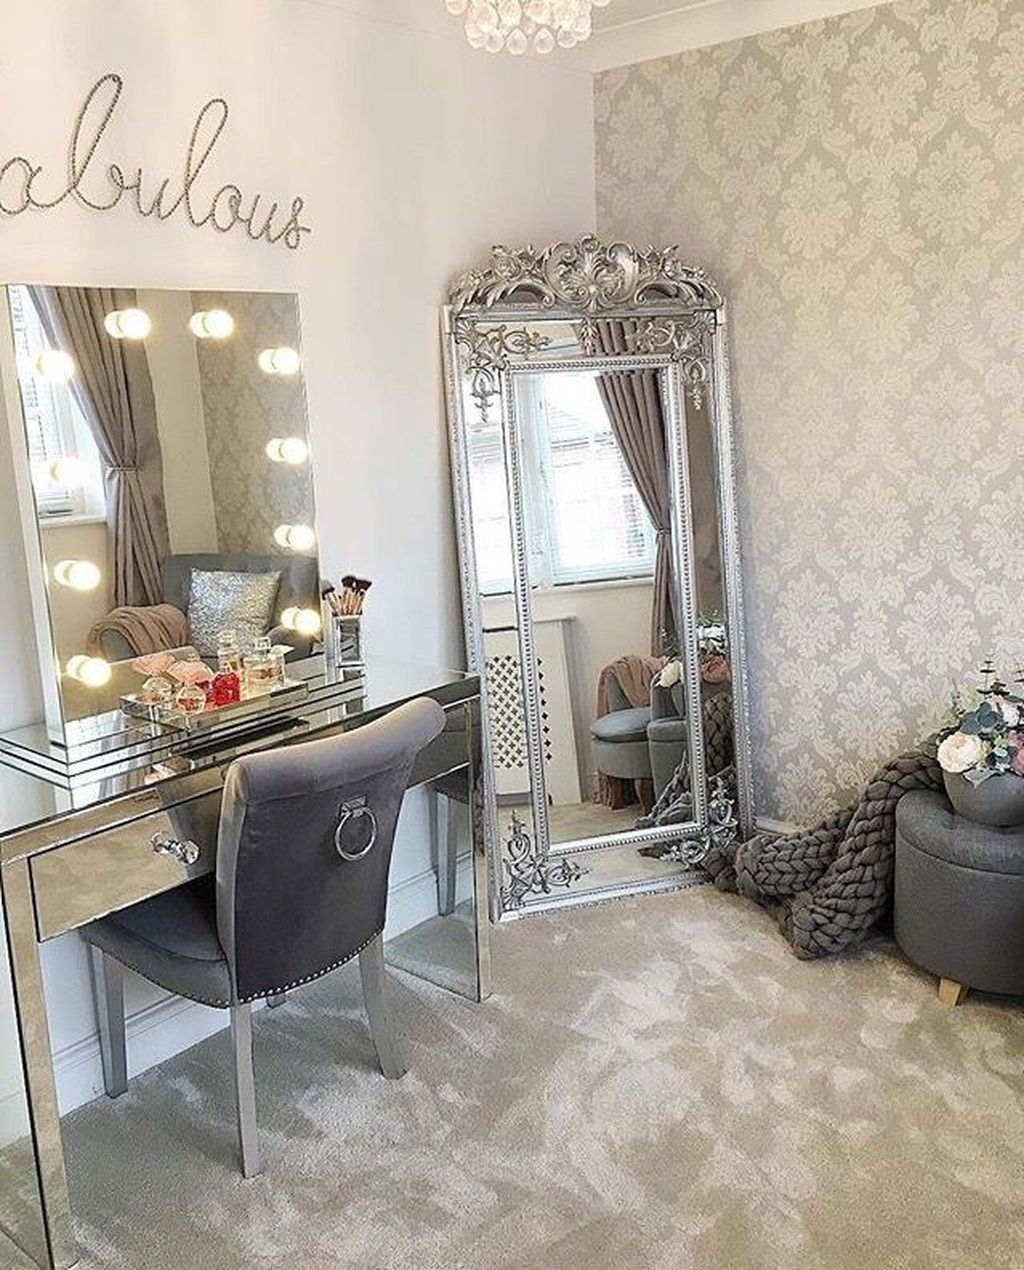 Dressing Table Ideas In Your Room25